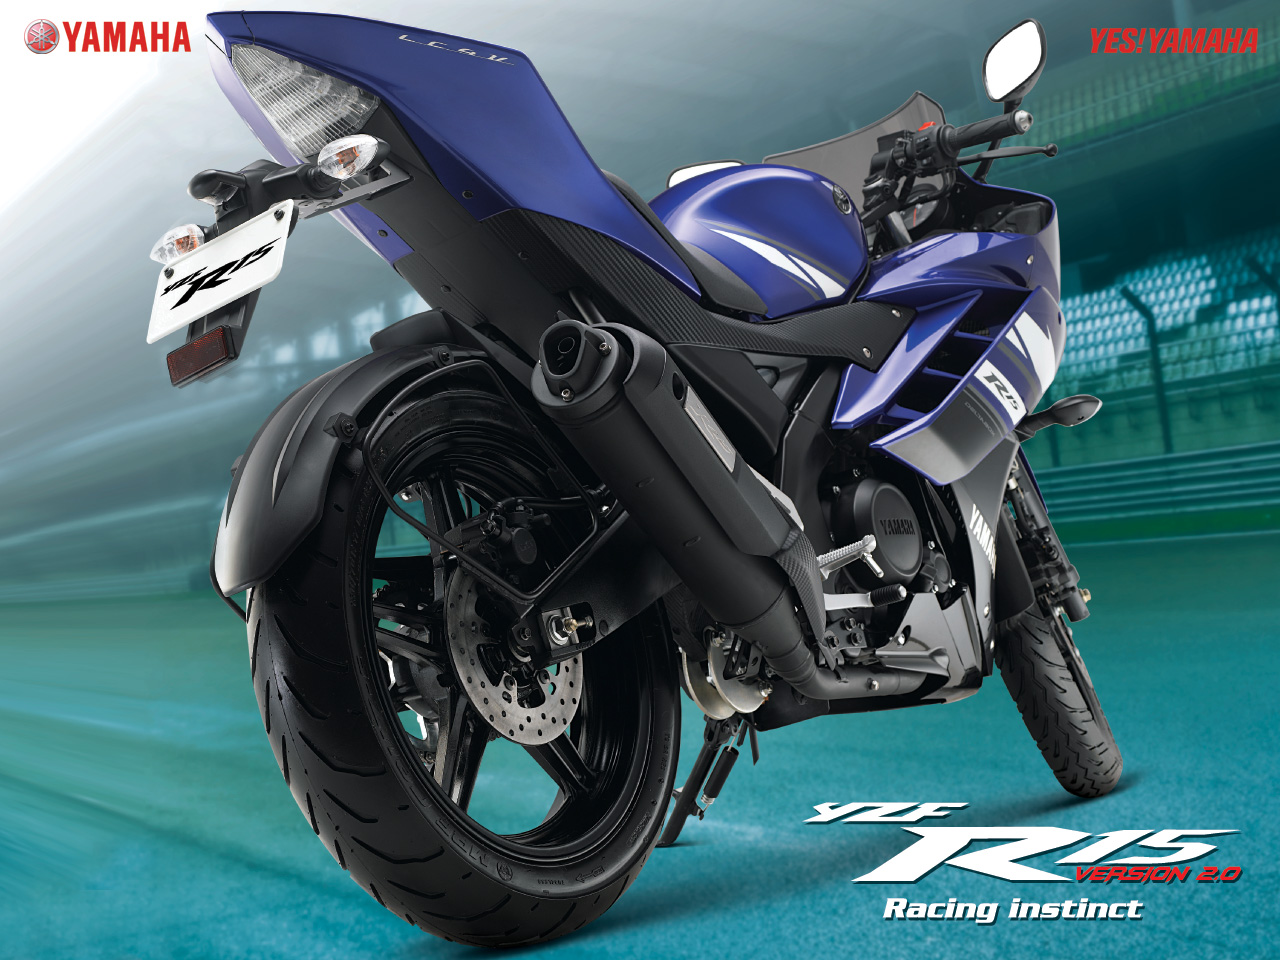 Wallpapers Yamaha R15 Version 2.0